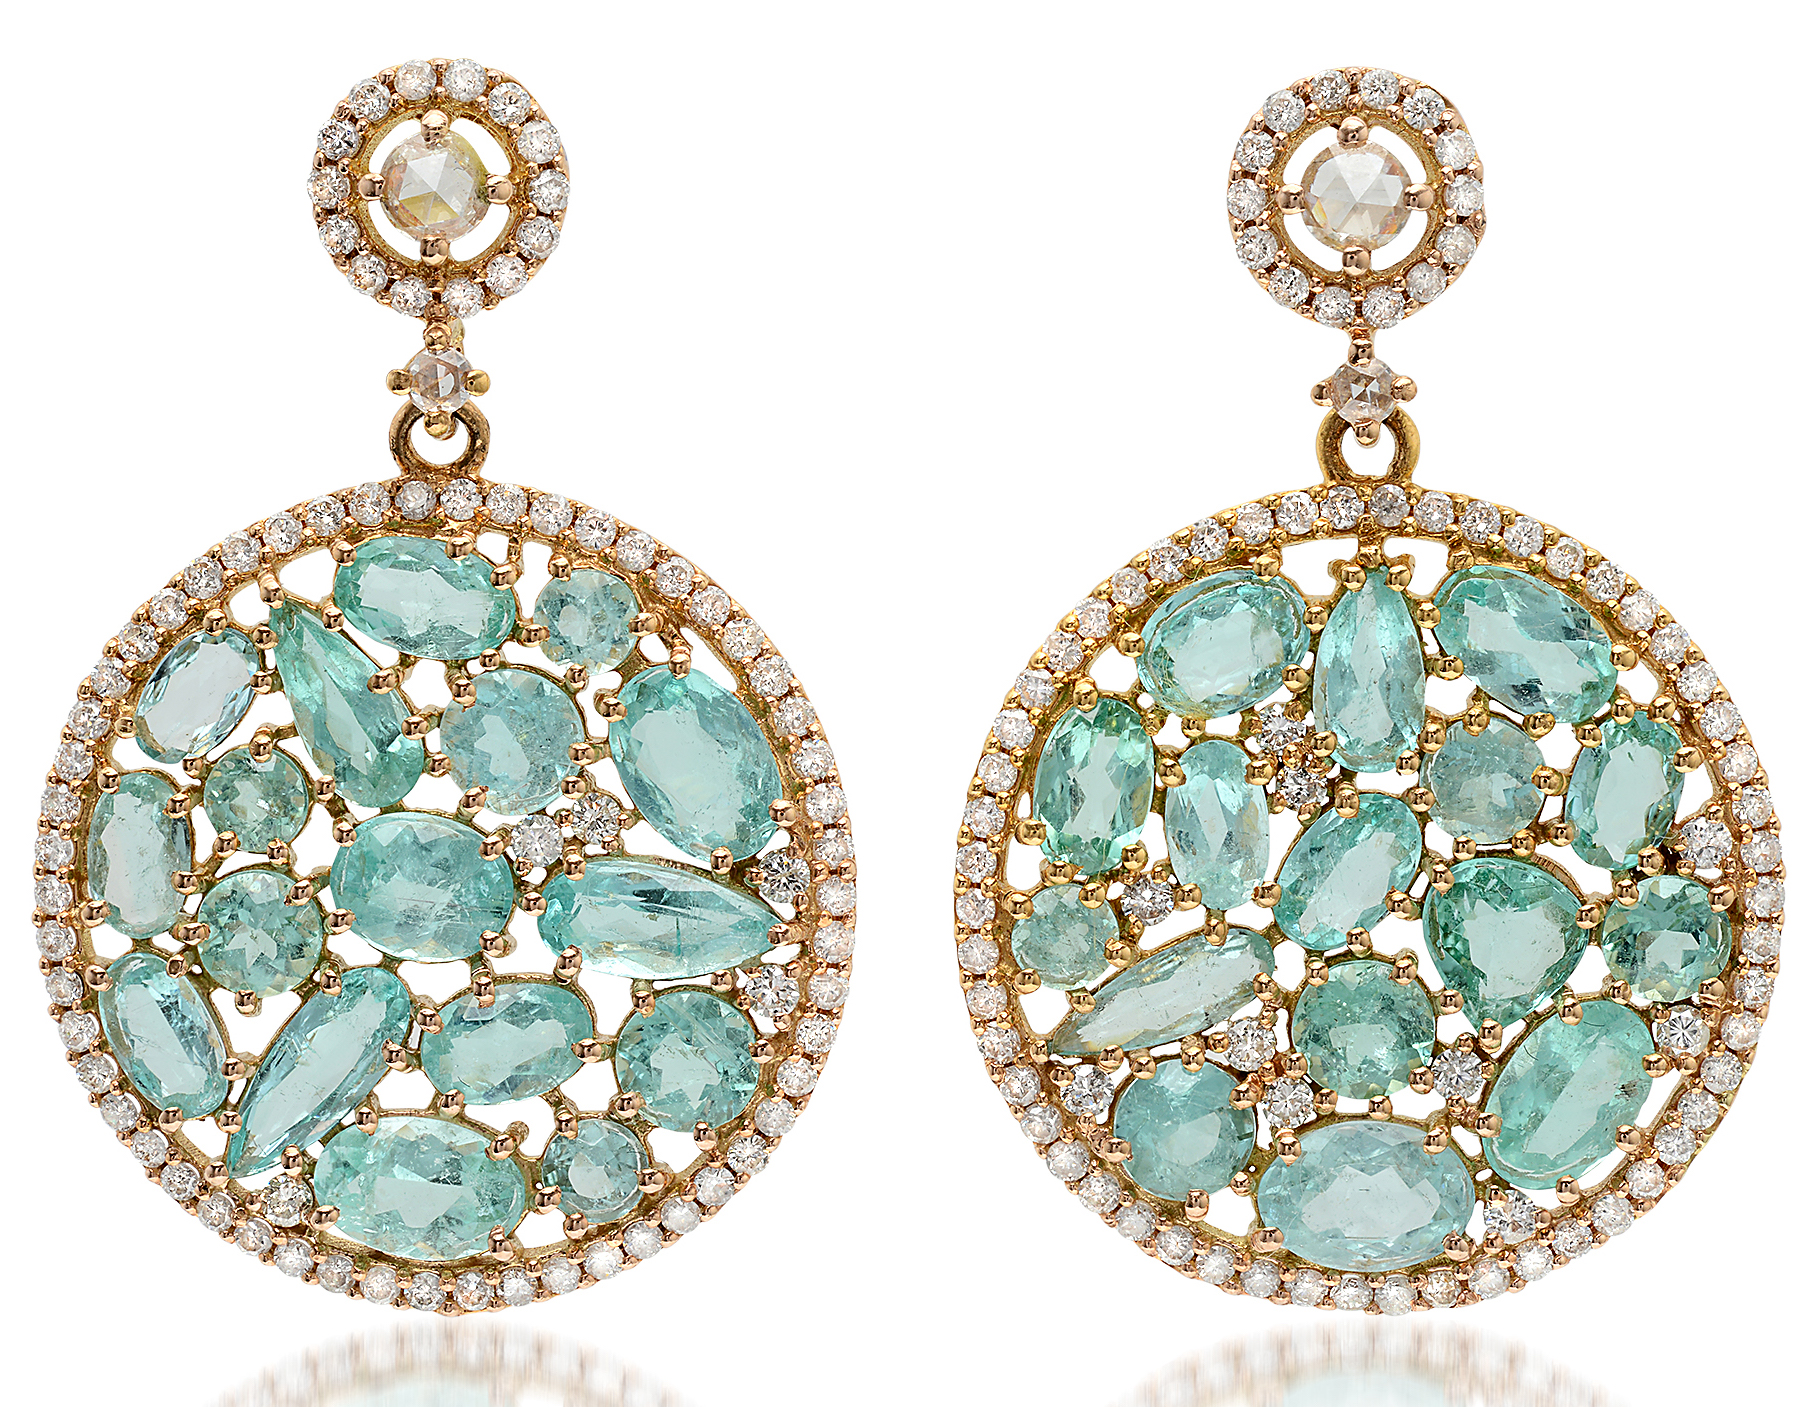 Bavna paraiba Giselle earrings | JCK On Your Market